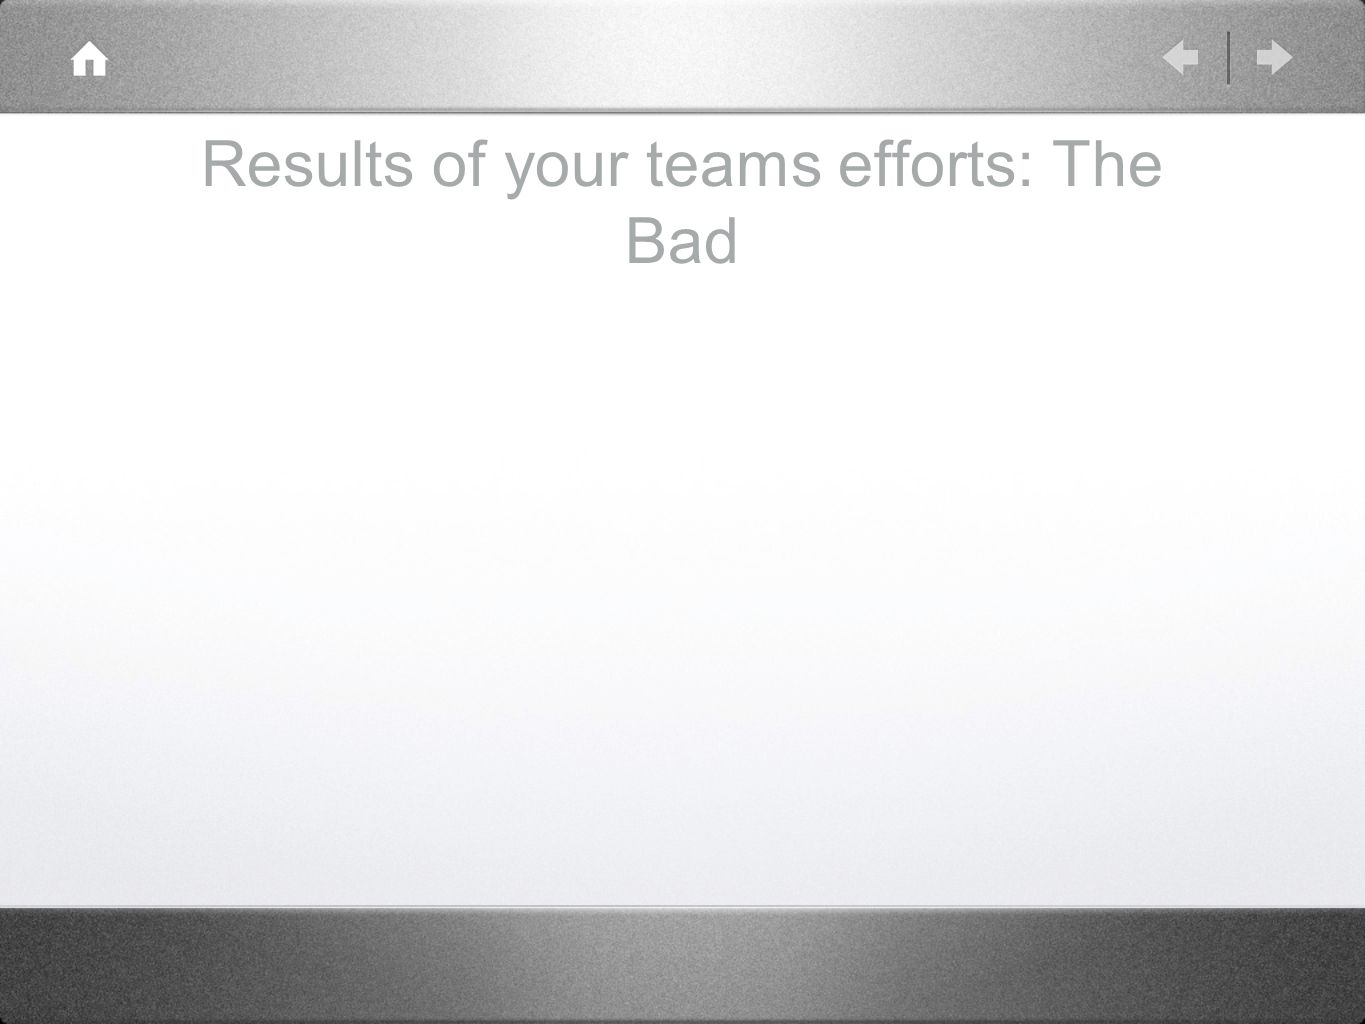 Results of your teams efforts: The Bad